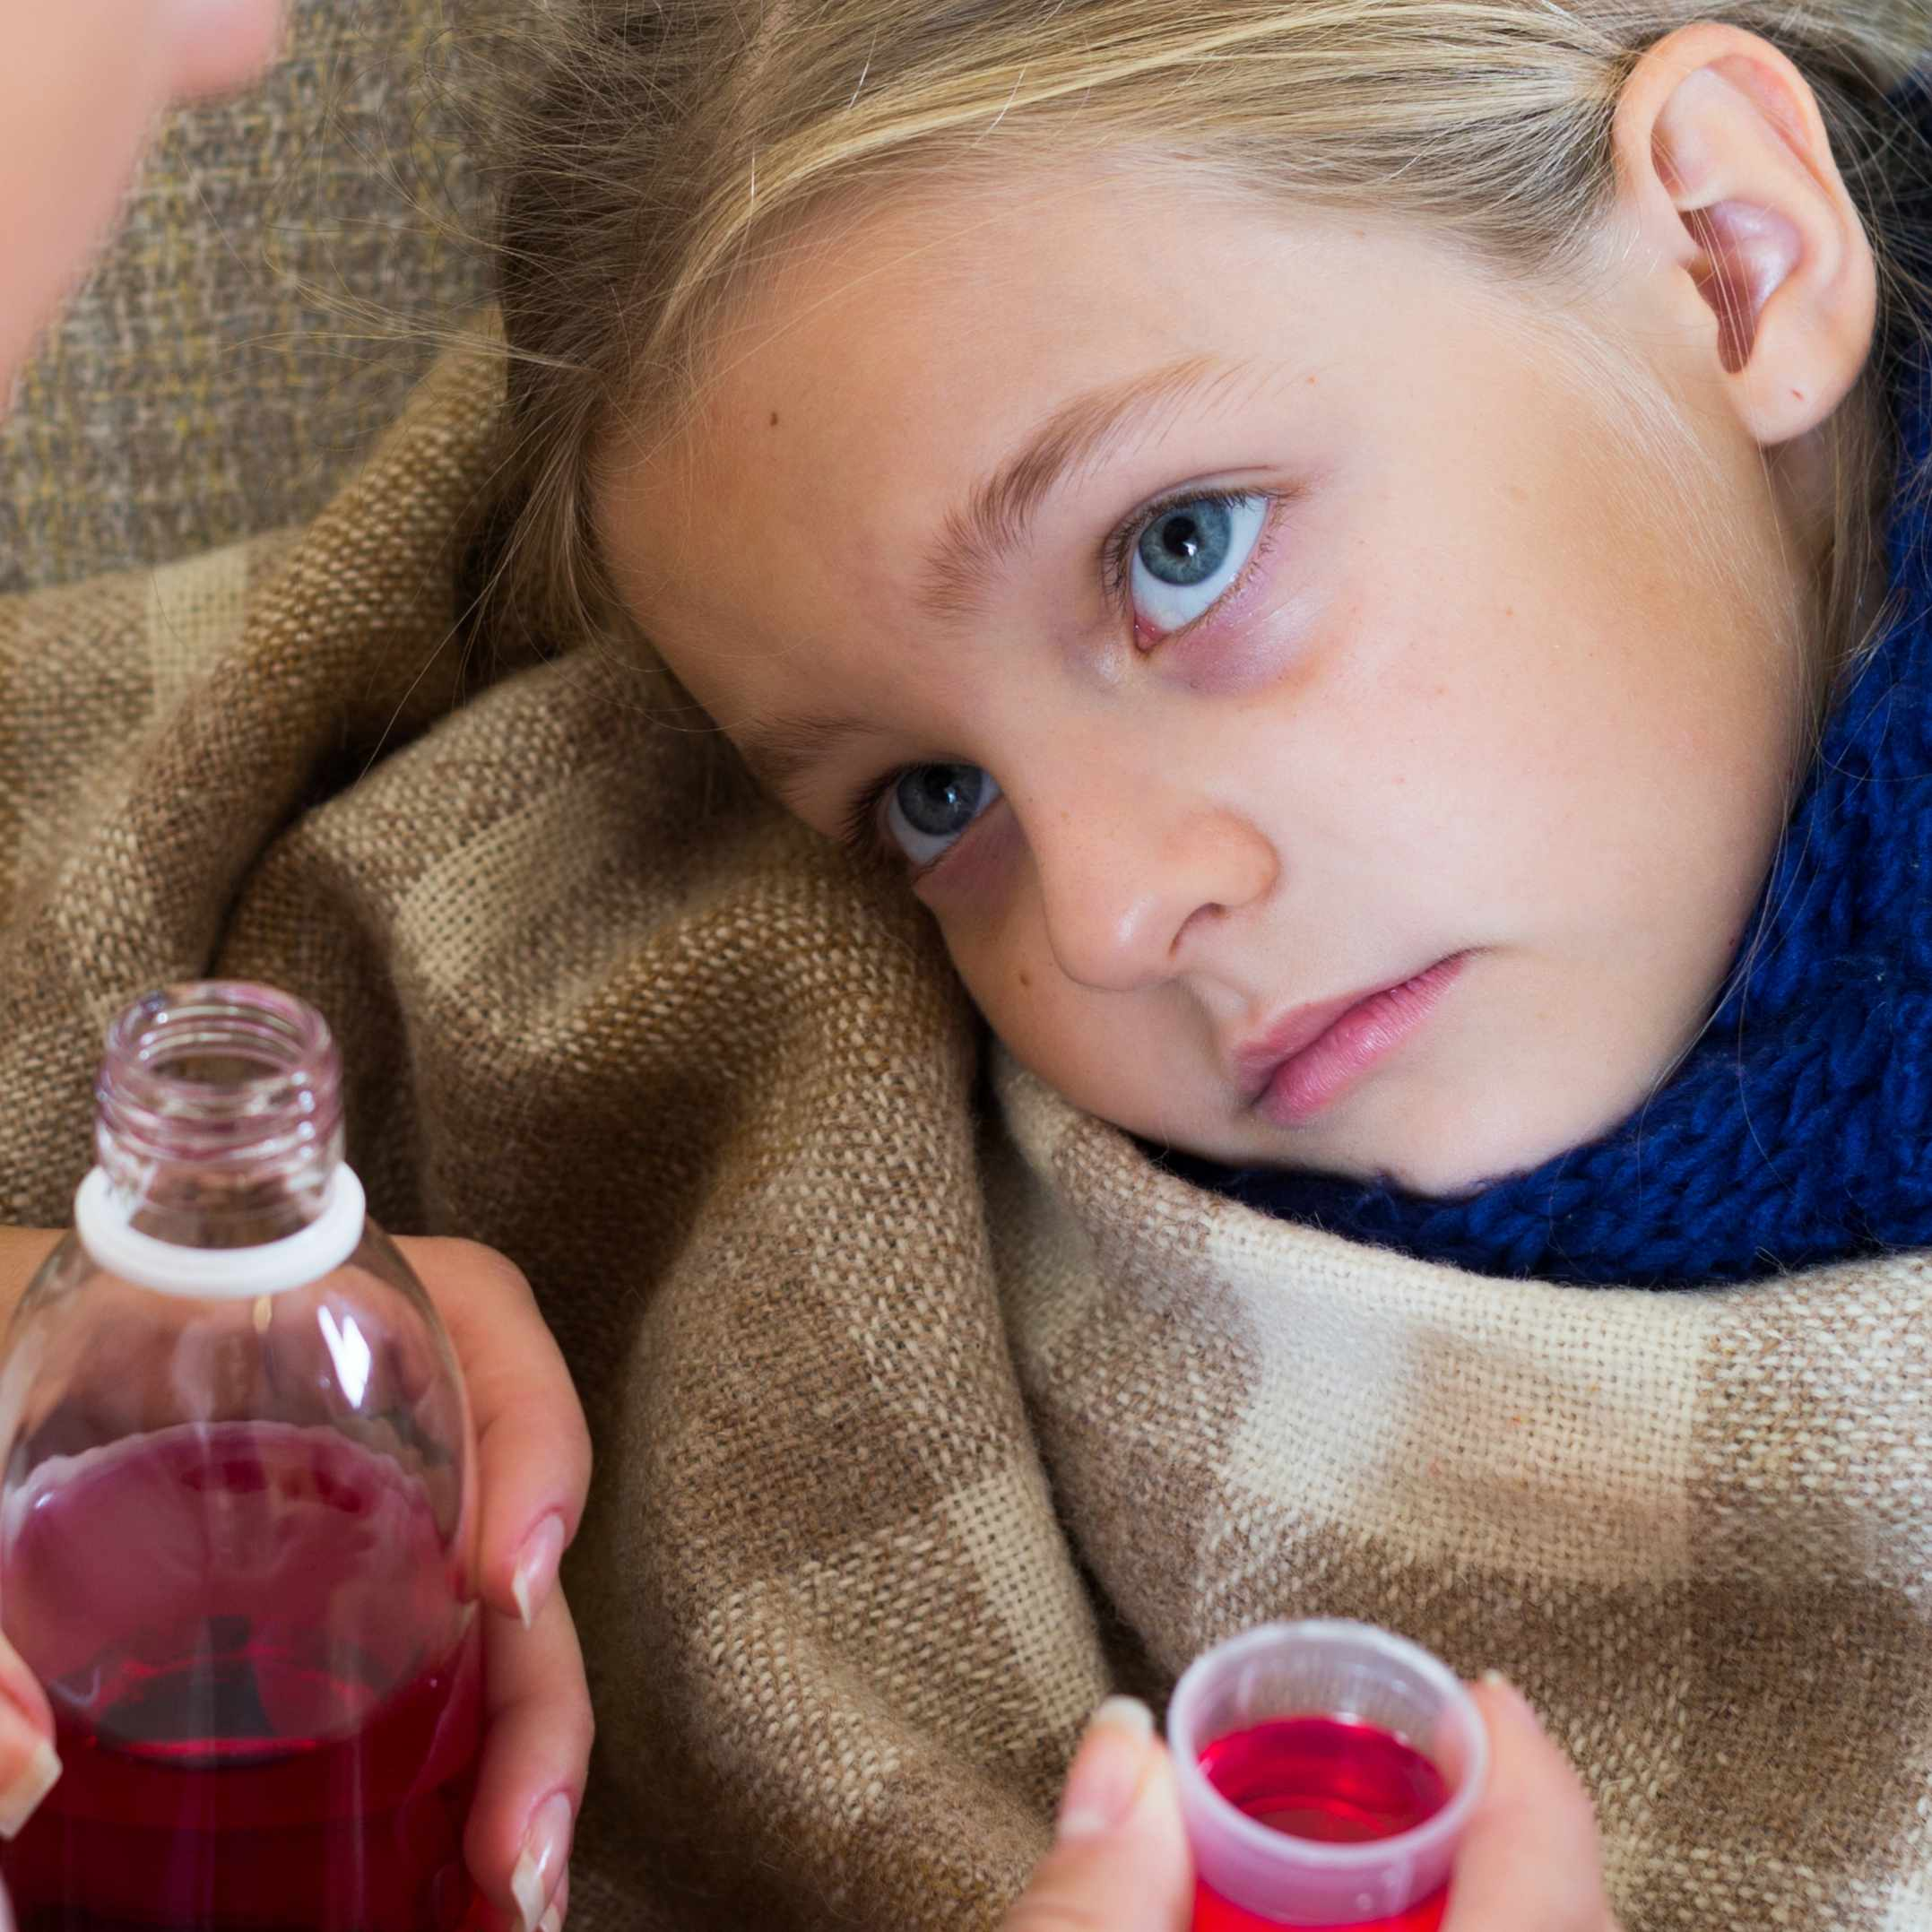 a little girl looking sick and sad with adult trying to give her cough medicine